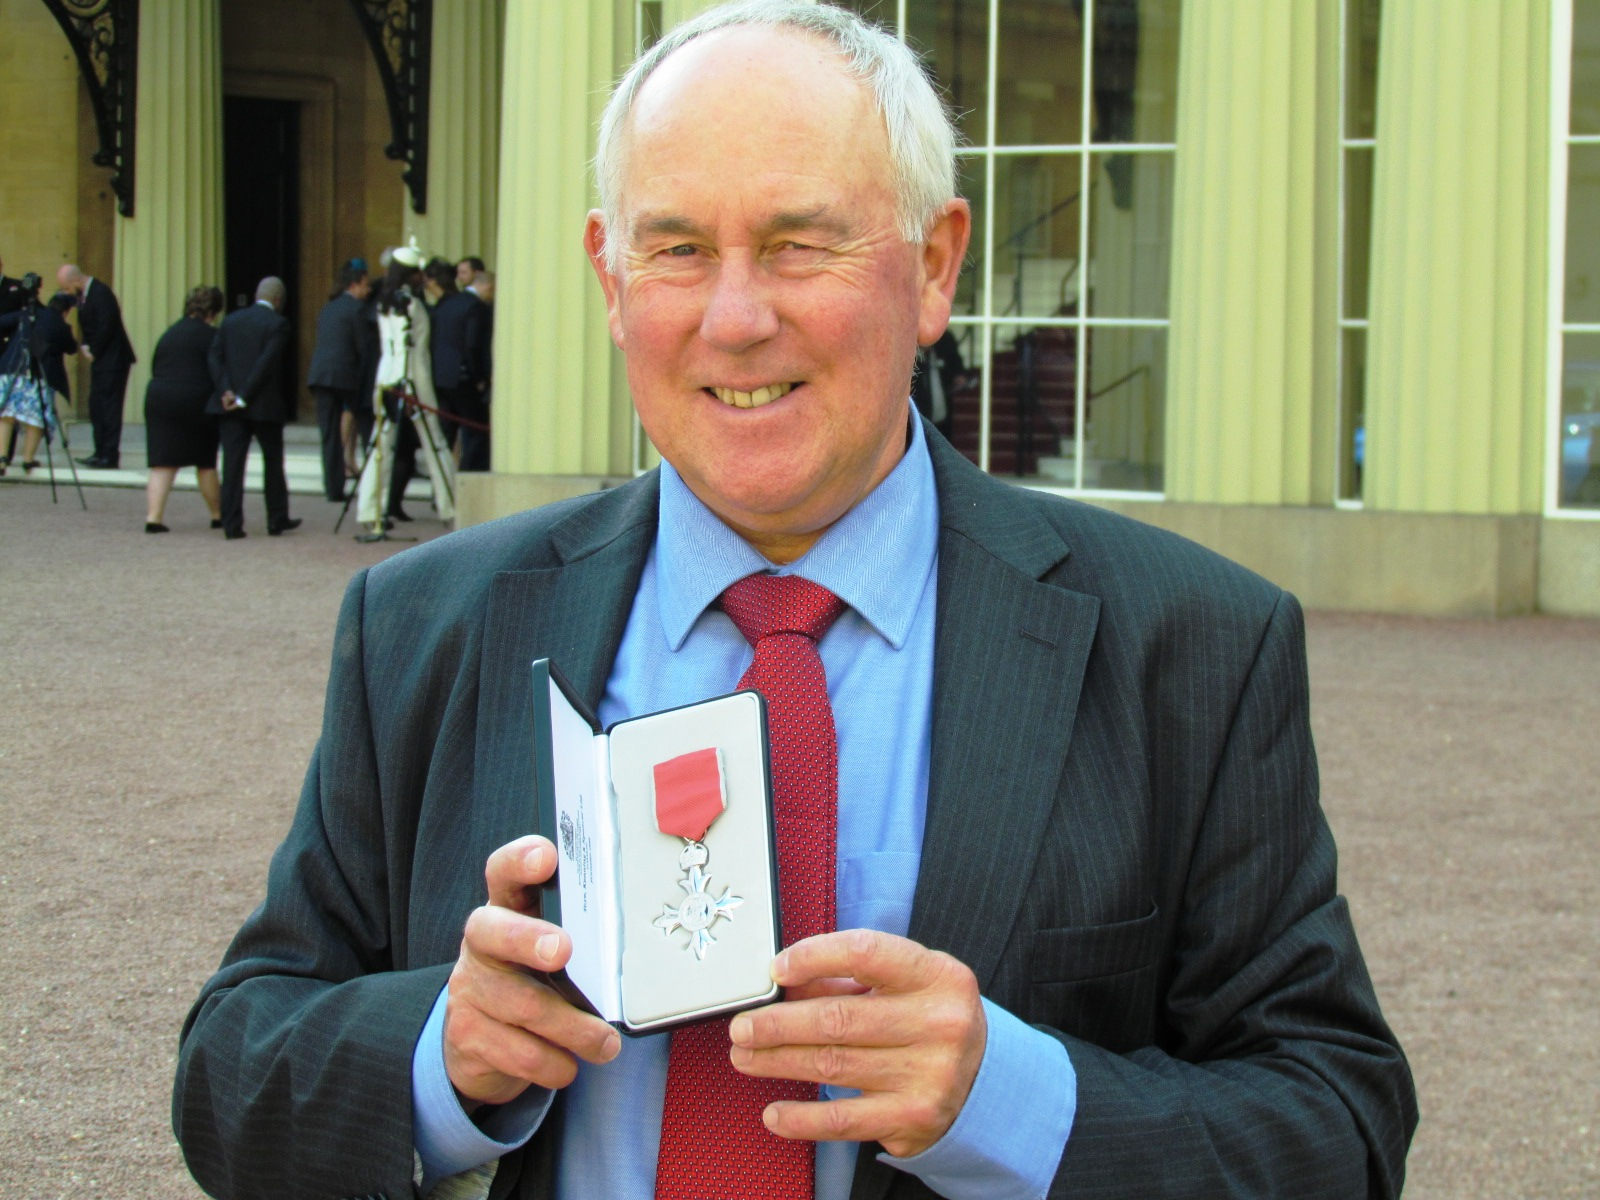 Kent coach collects MBE for services to girls cricket